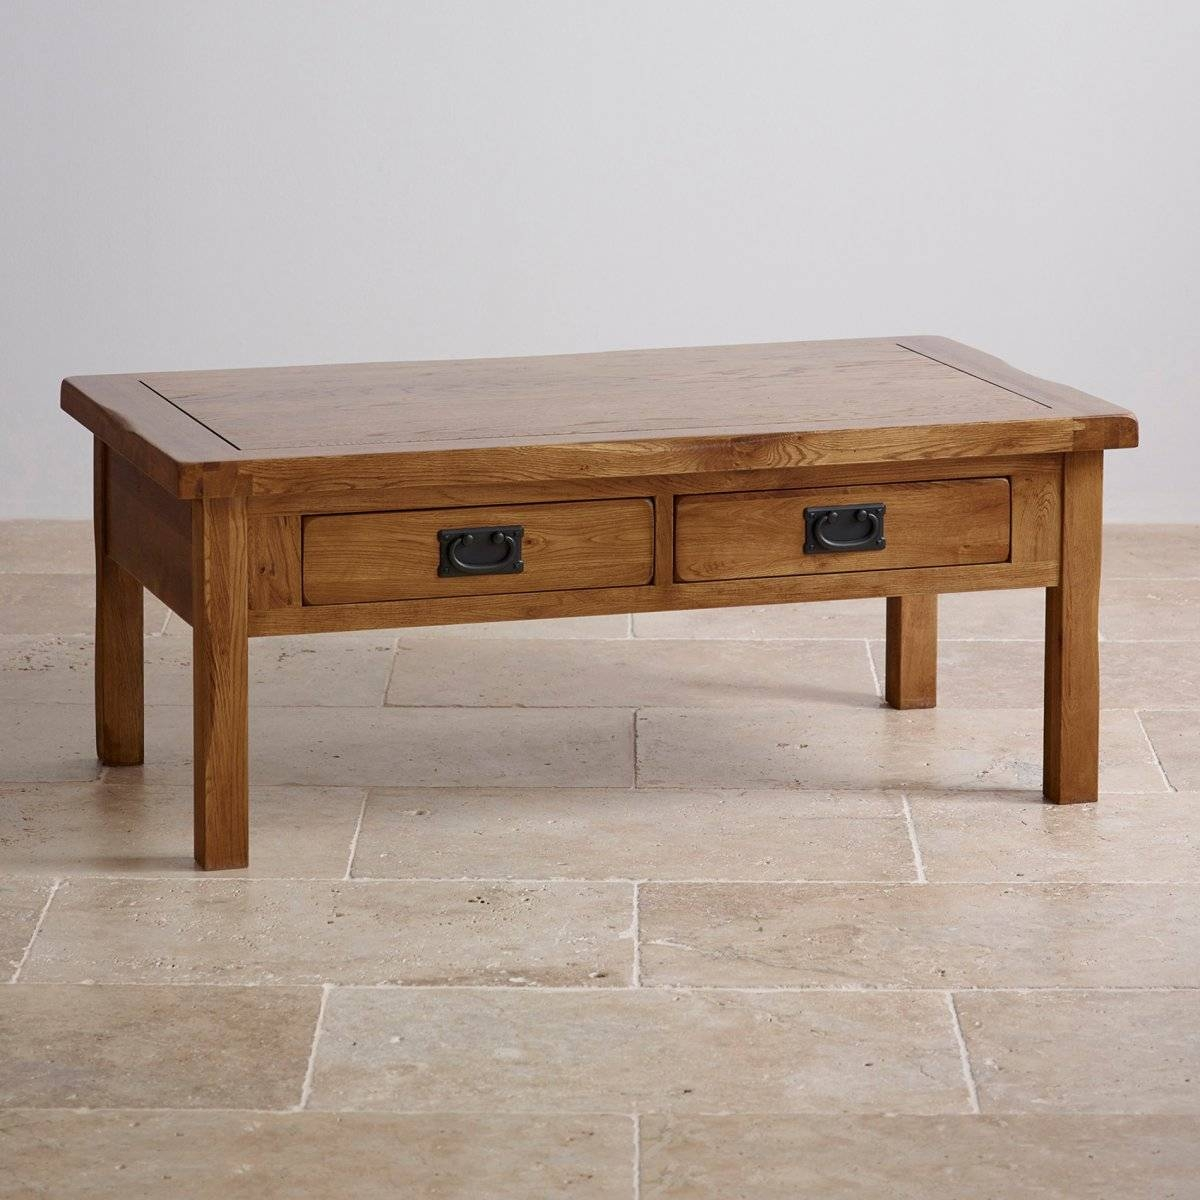 Original Rustic 4 Drawer Coffee Table In Solid Oak pertaining to Solid Oak Coffee Table With Storage (Image 11 of 15)